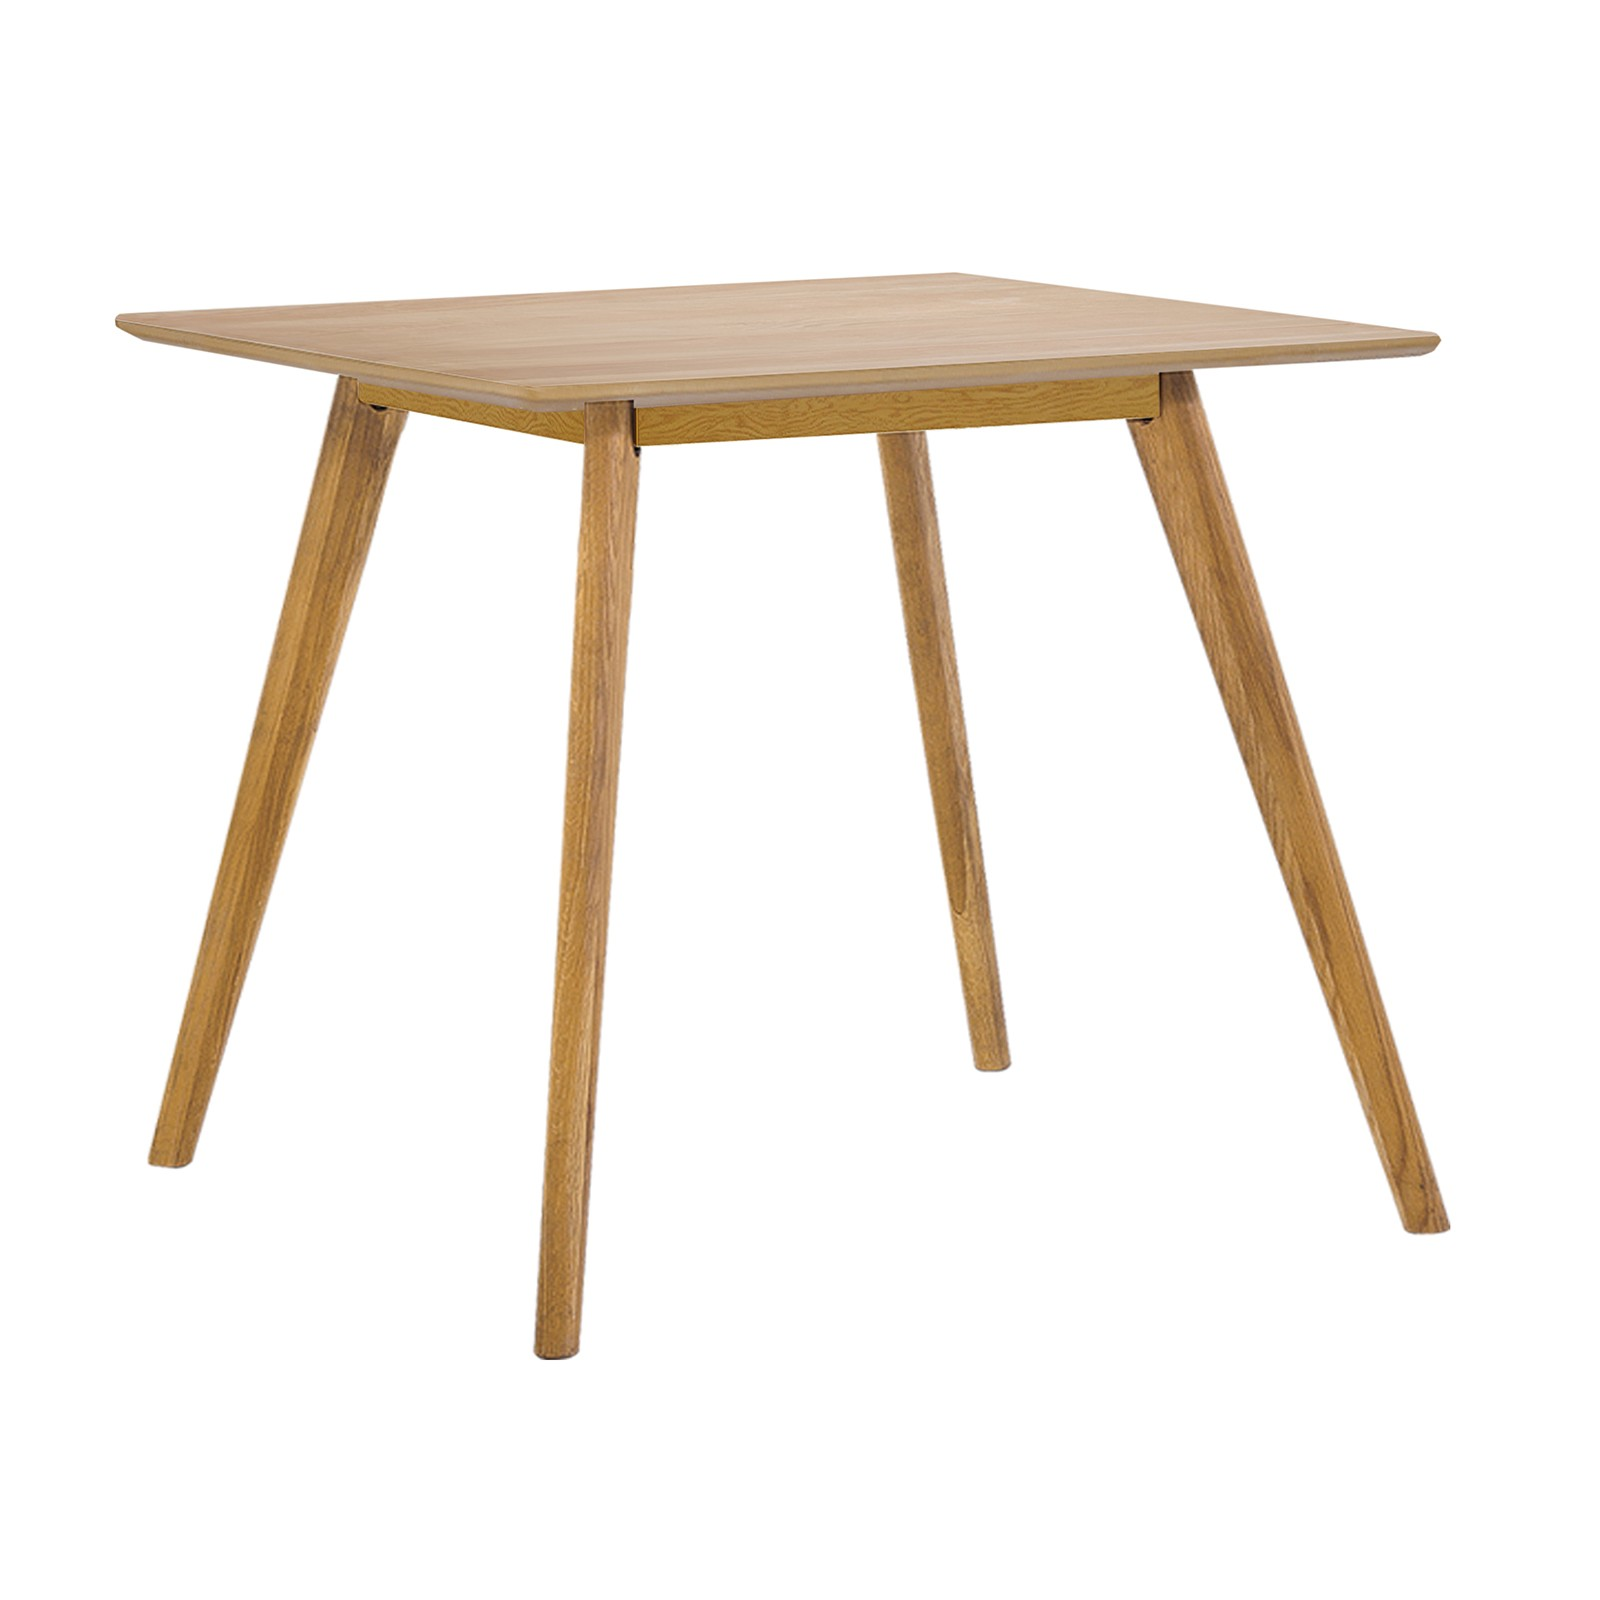 Scandinavian style dining table abreo home furniture - Dining table scandinavian ...